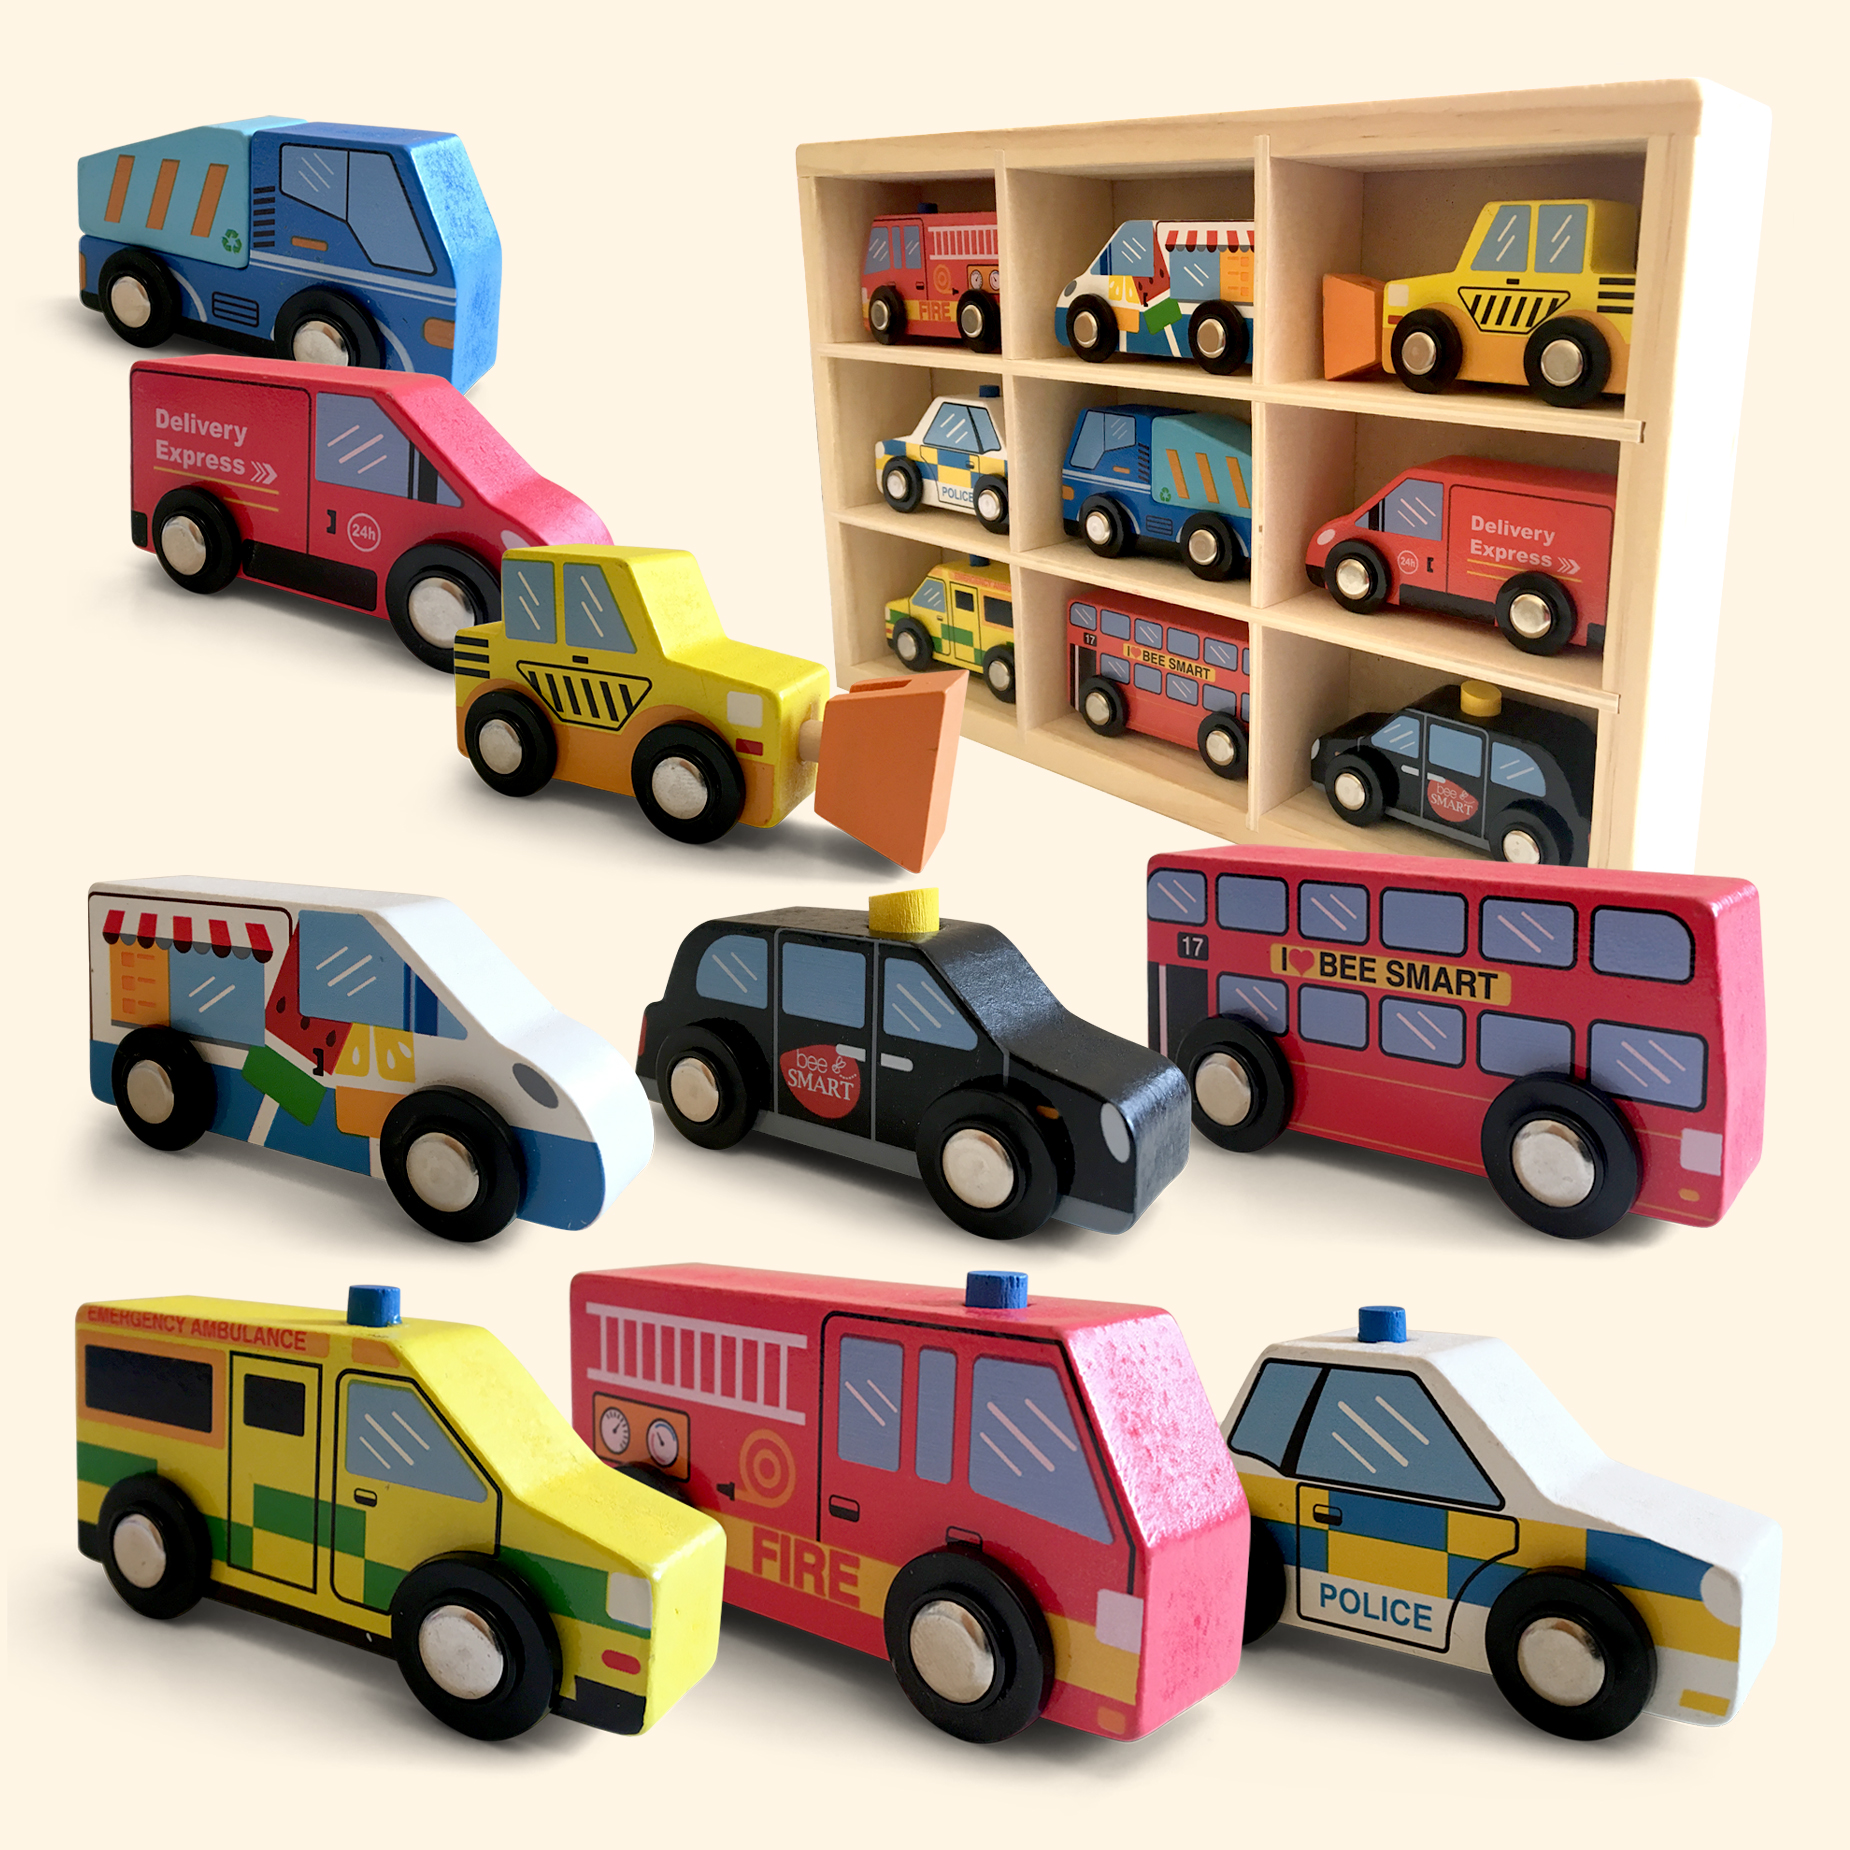 9 Bright & Coloruful Wooden Vehicle set